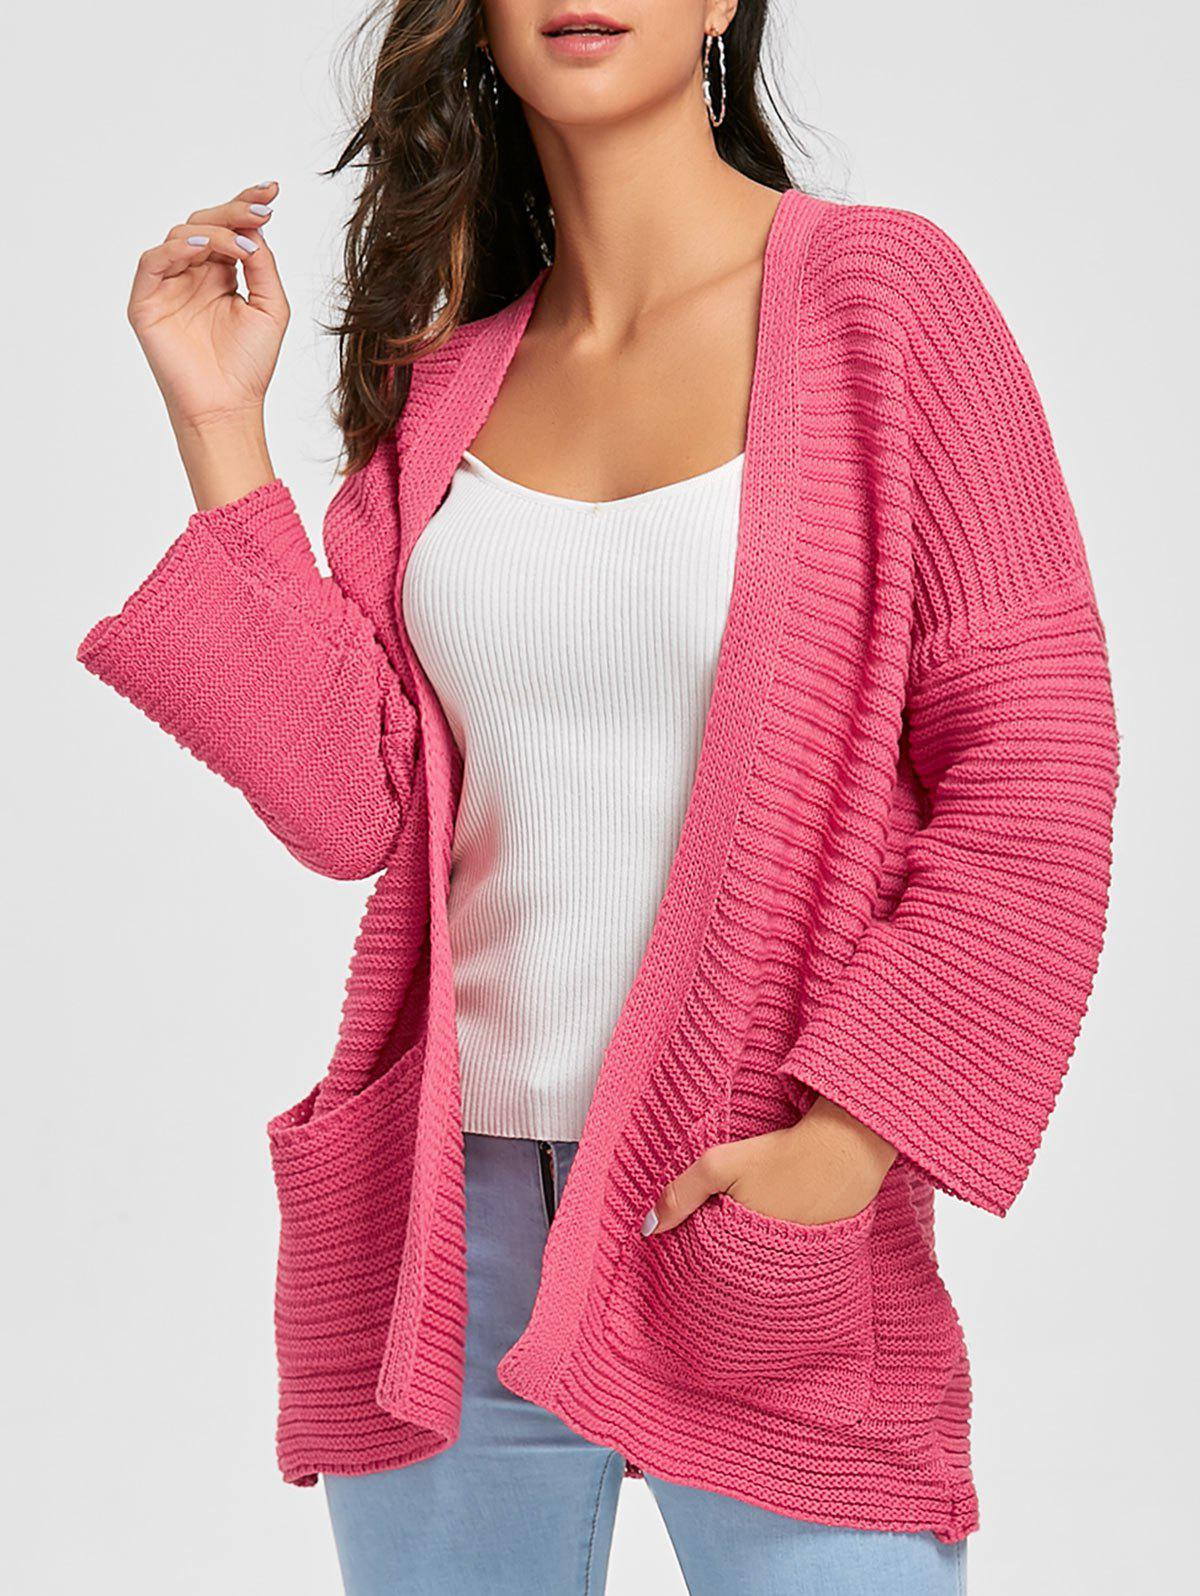 Drop Shoulder Open Front Knit Cardigan shyam kumar mishra antimicrobial drug resistance in lower respiratory tract infection